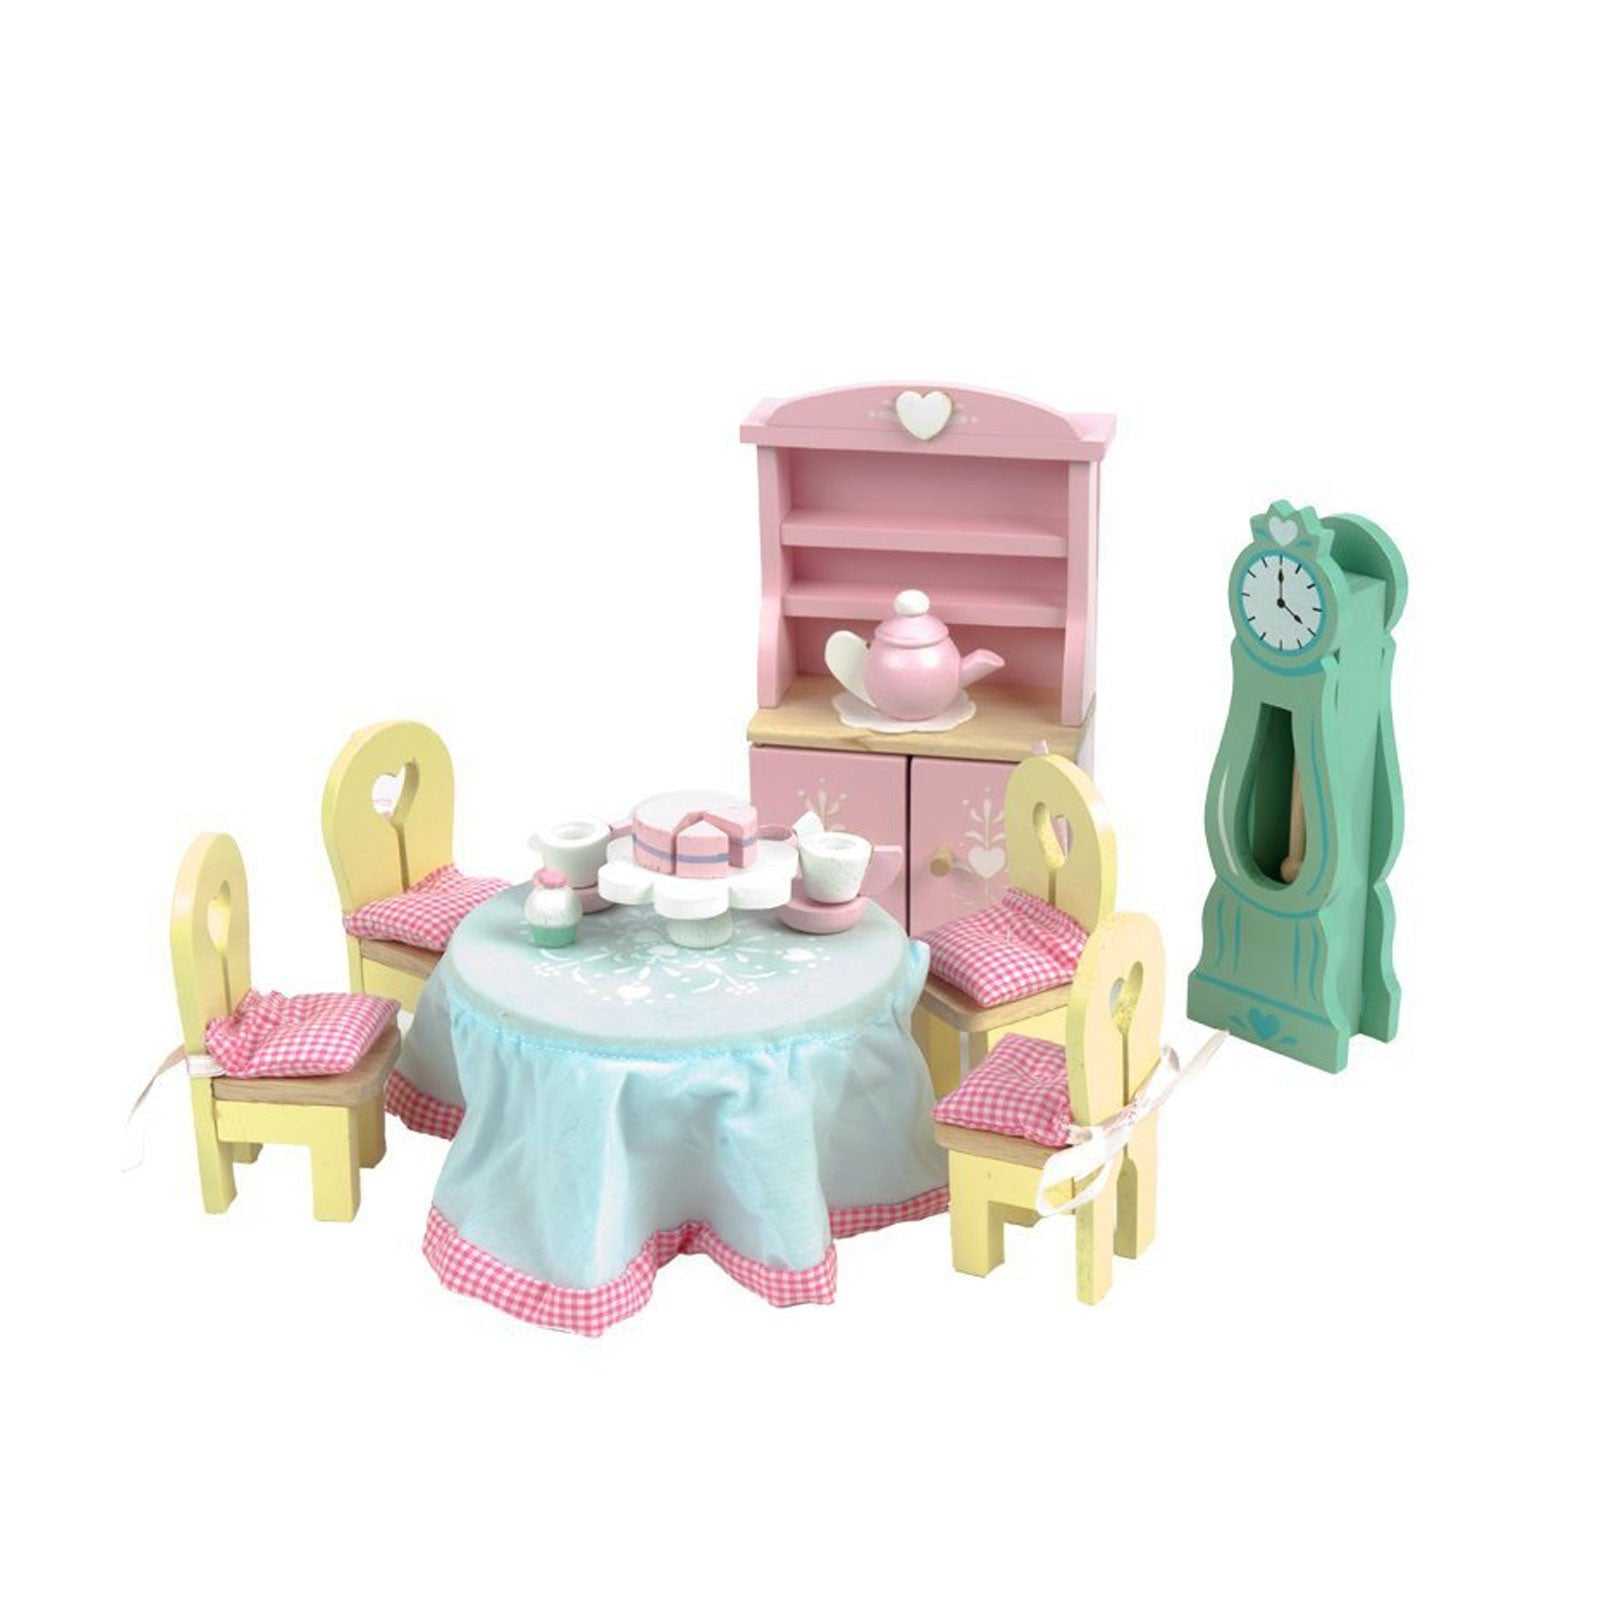 Le Toy Van Dolls House Furniture Le Toy Van Dollhouse Accessories Drawing Room at Little Earth Nest Eco Shop